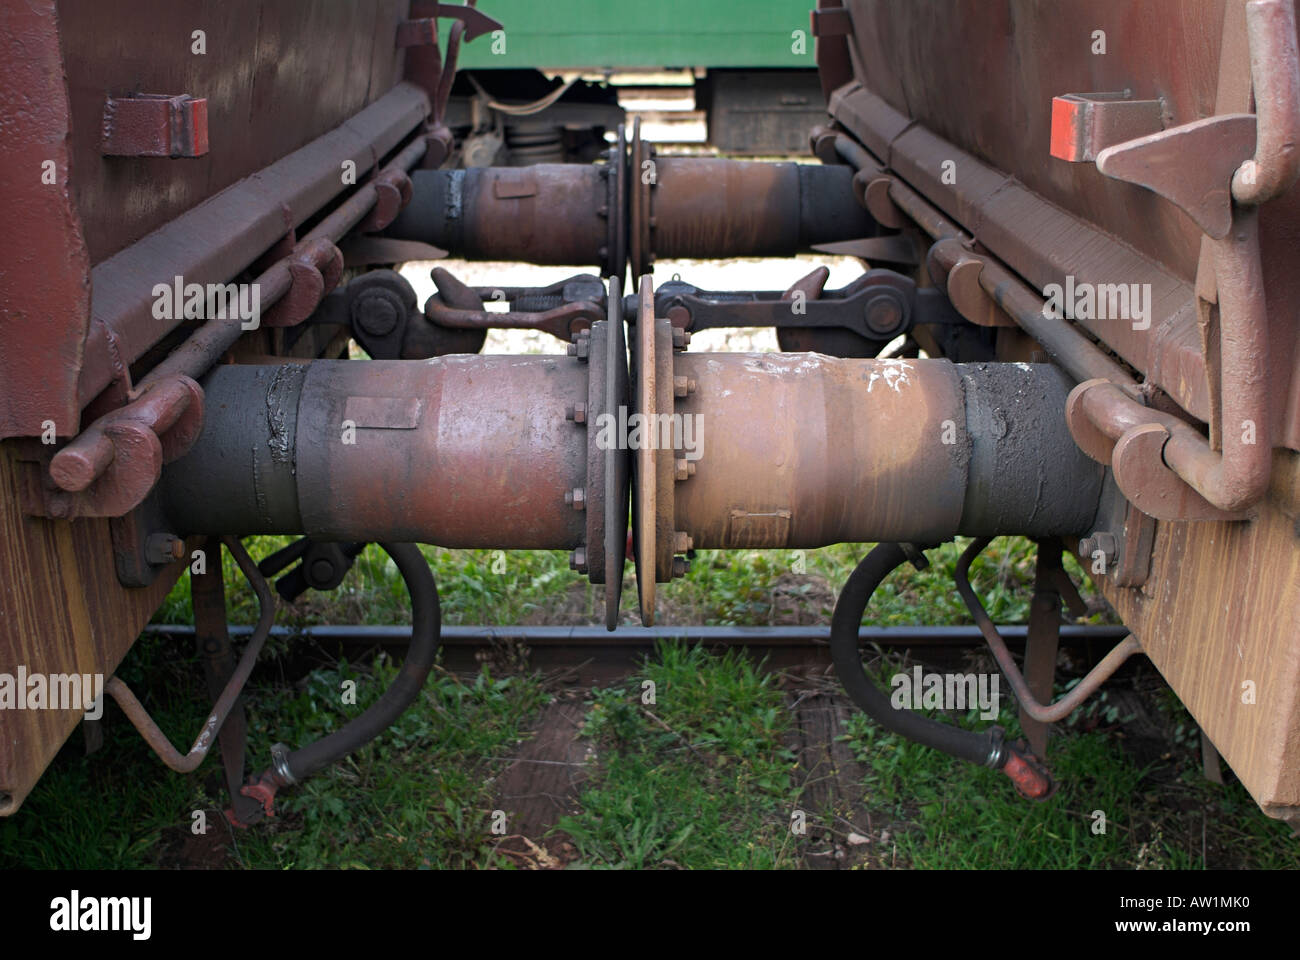 Buffers of Two Connected Railway Freight Waggons - Stock Image